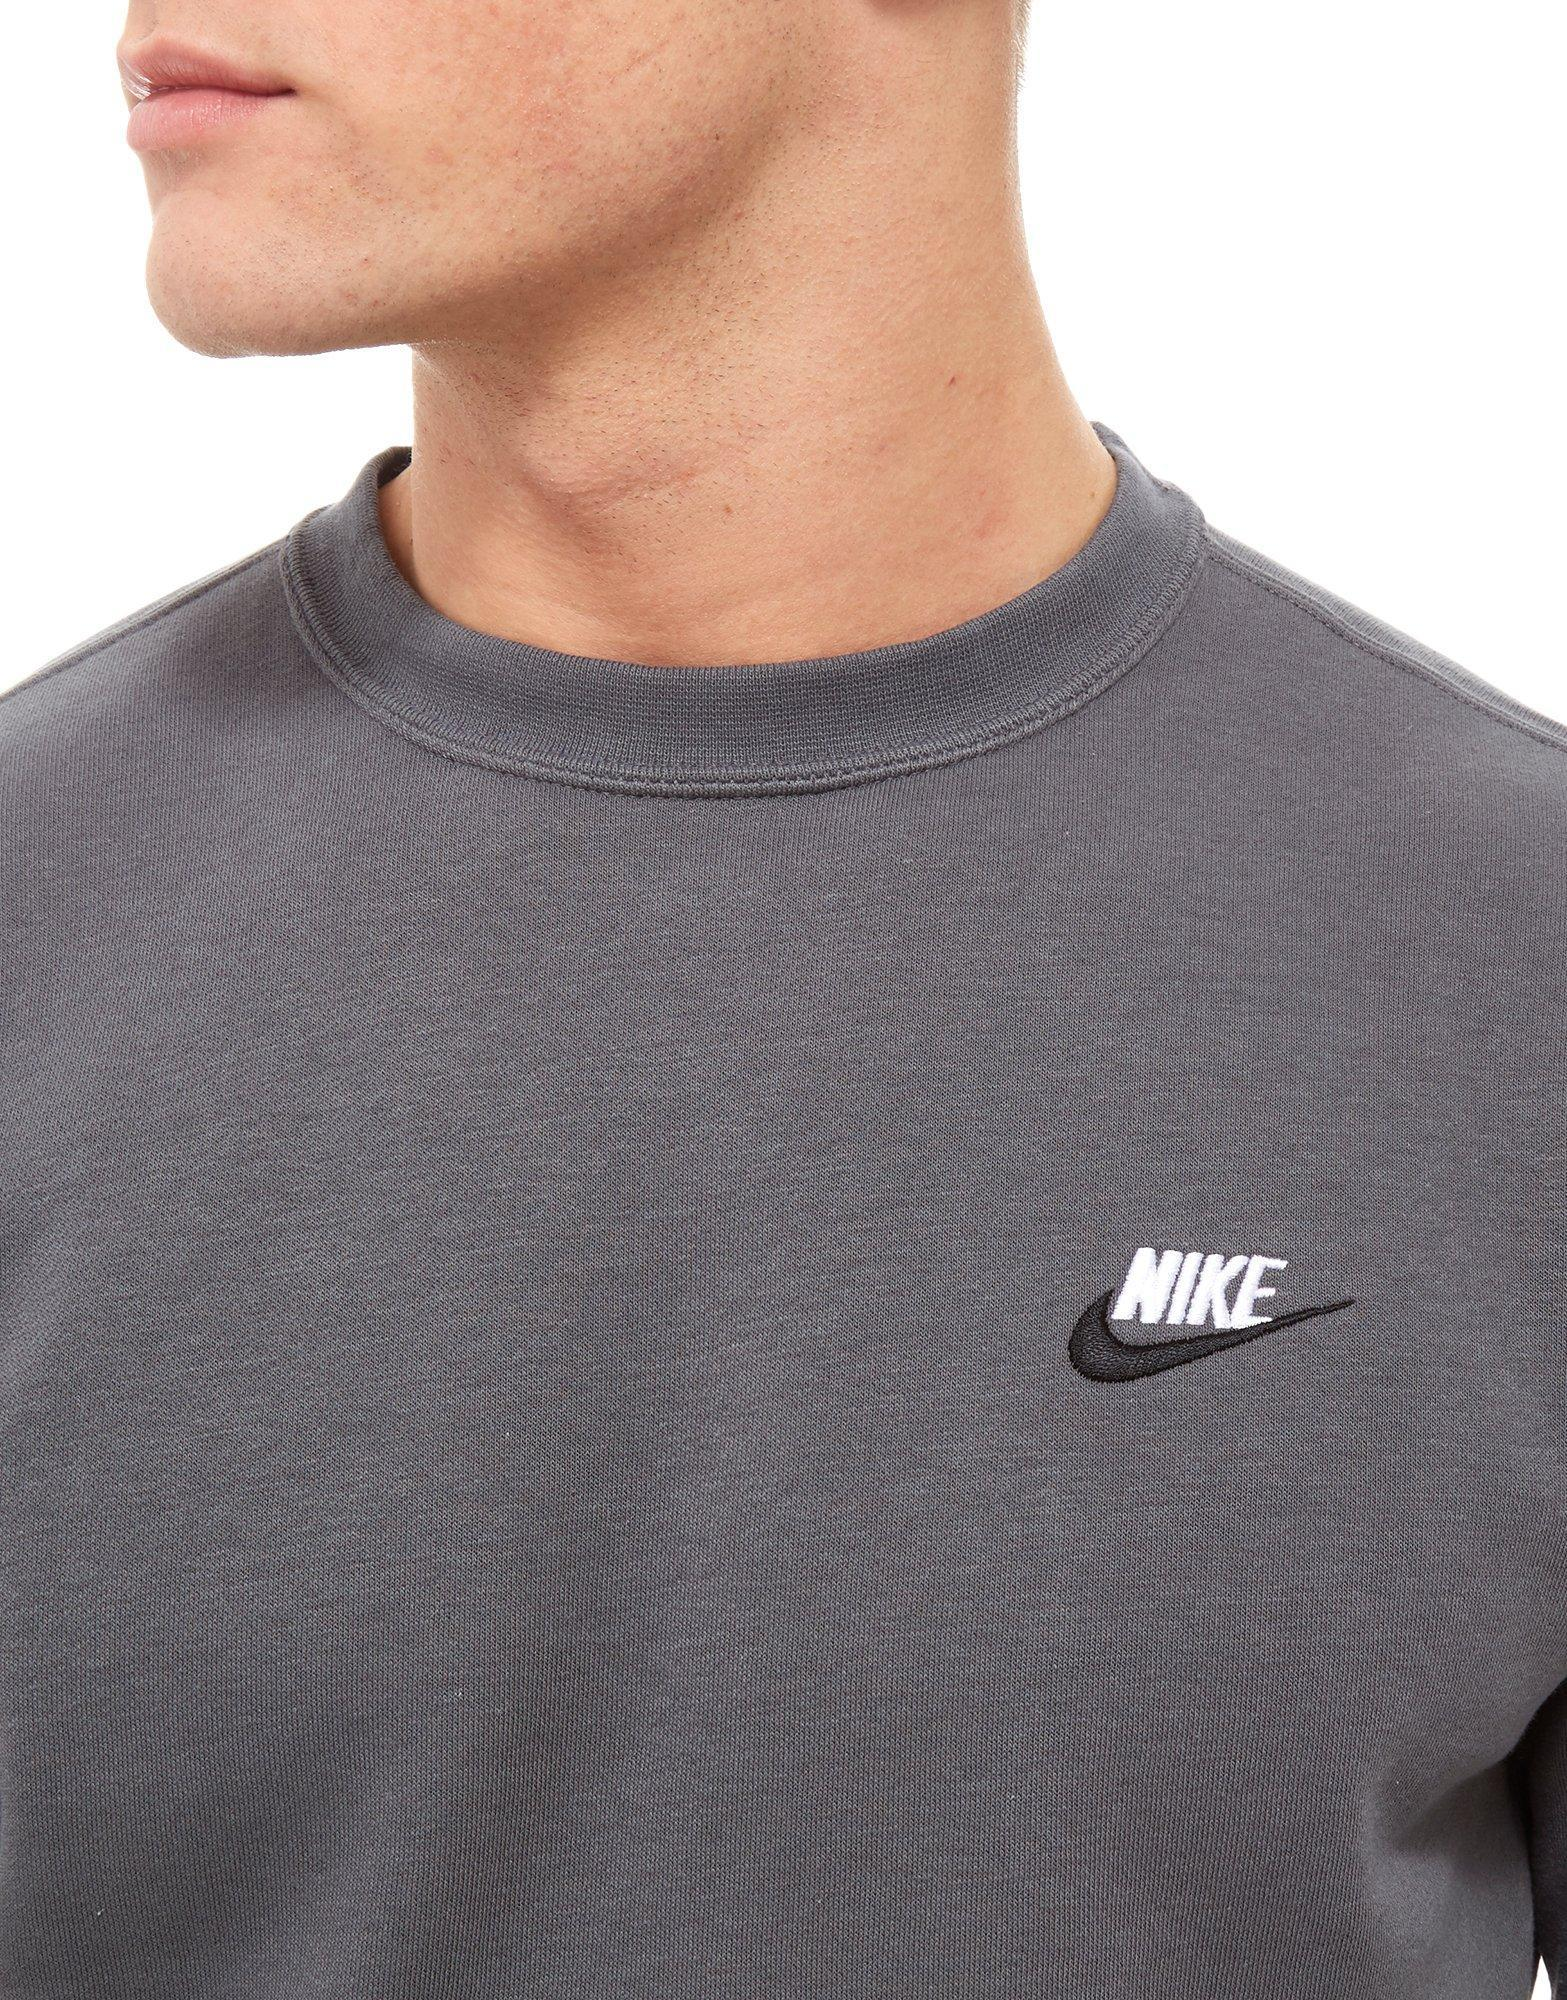 Tsqqyzfeg8 Gray Lyst Sweatshirt Men For Foundation Crew In Nike qApwf7